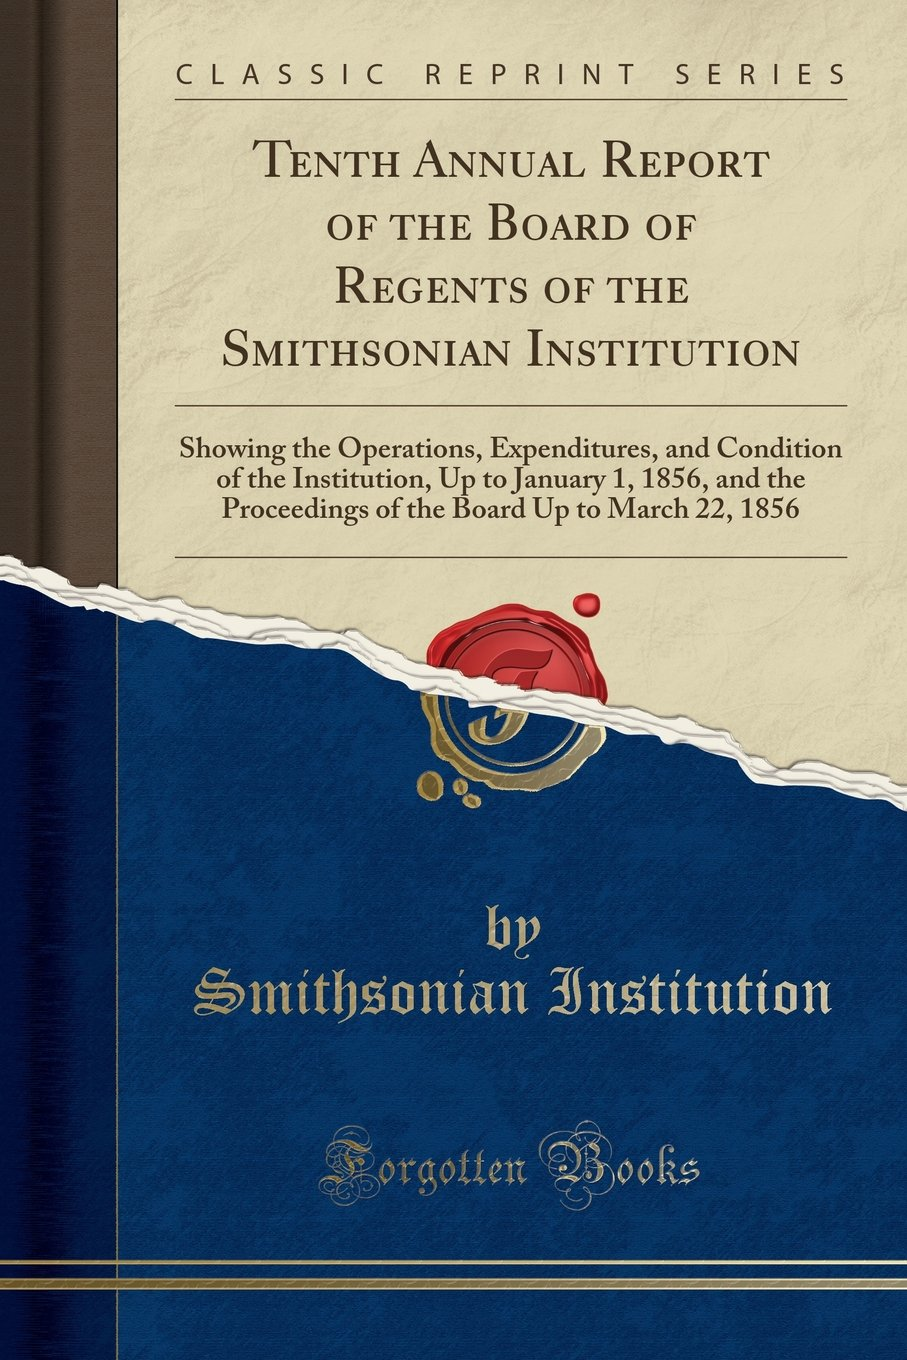 Tenth Annual Report of the Board of Regents of the Smithsonian Institution: Showing the Operations, Expenditures, and Condition of the Institution, Up ... Board Up to March 22, 1856 (Classic Reprint) pdf epub